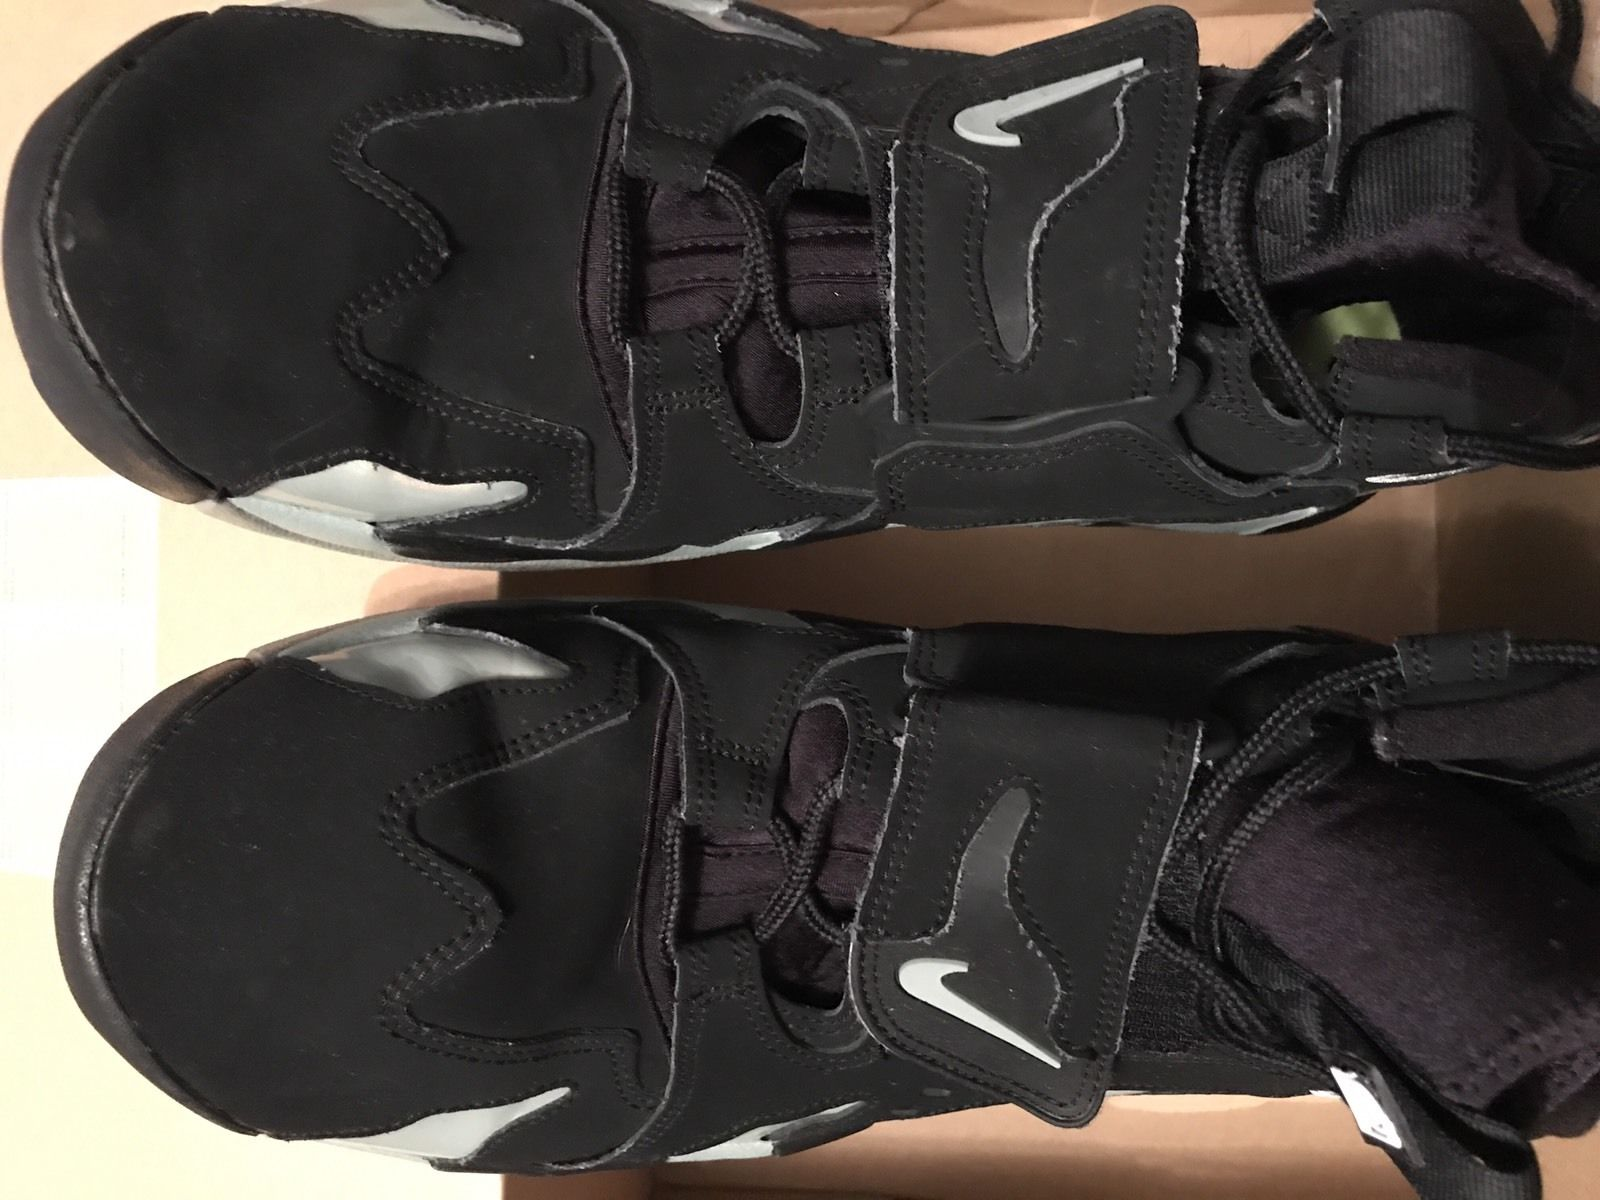 Image of Nike Air dT Max 96 Deon Sanders - Black/ Mica Green/ Volt -Size 13 - Used